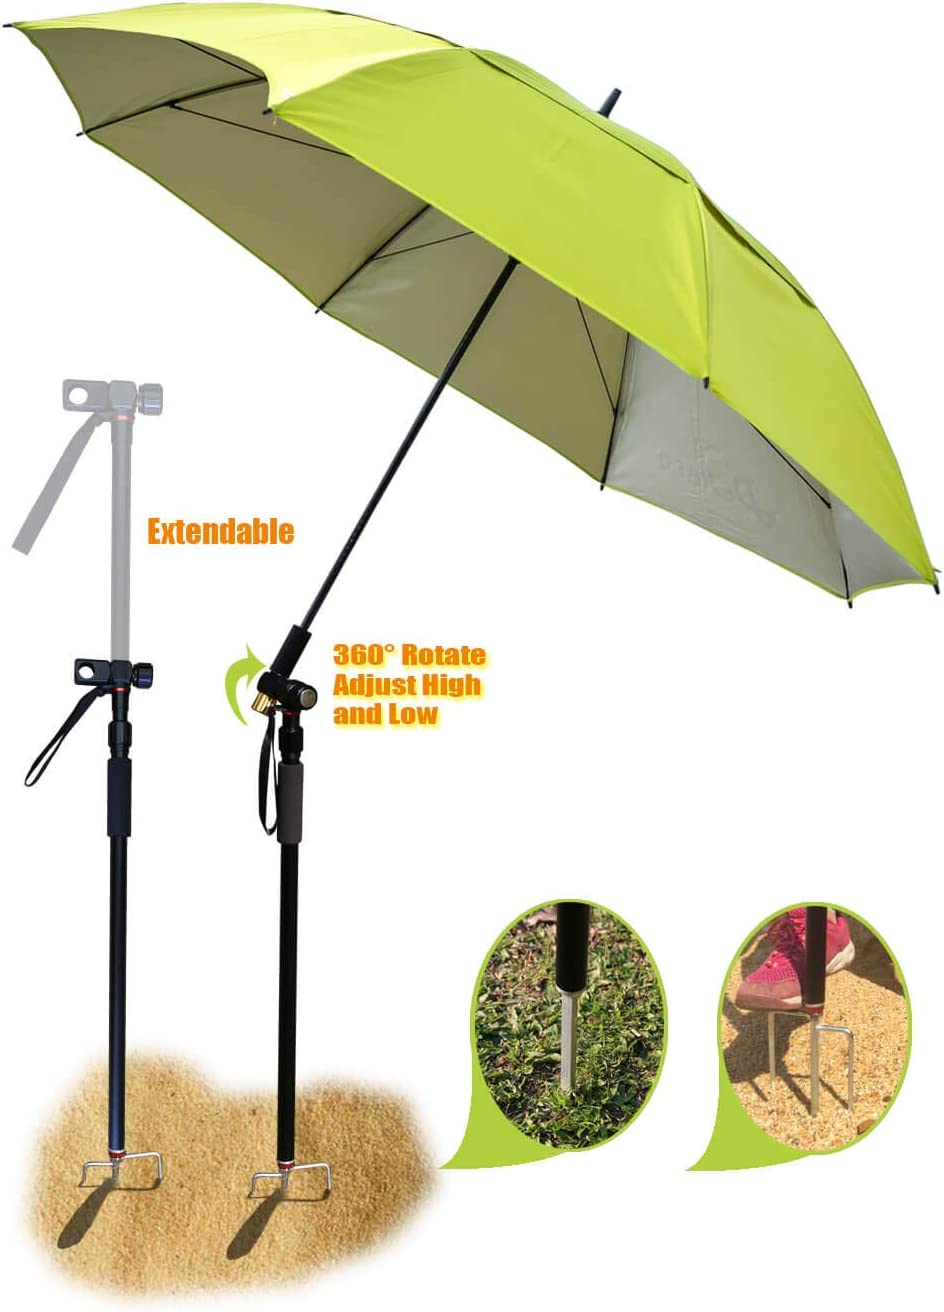 Fishing patio beach umbrella with 4.39lb, windproof waterprool portable Tilt and Telescoping Pole Sand Anchor sturdy umbrella, use for beach lawn back yard patio park shadezilla outdoor travel garden